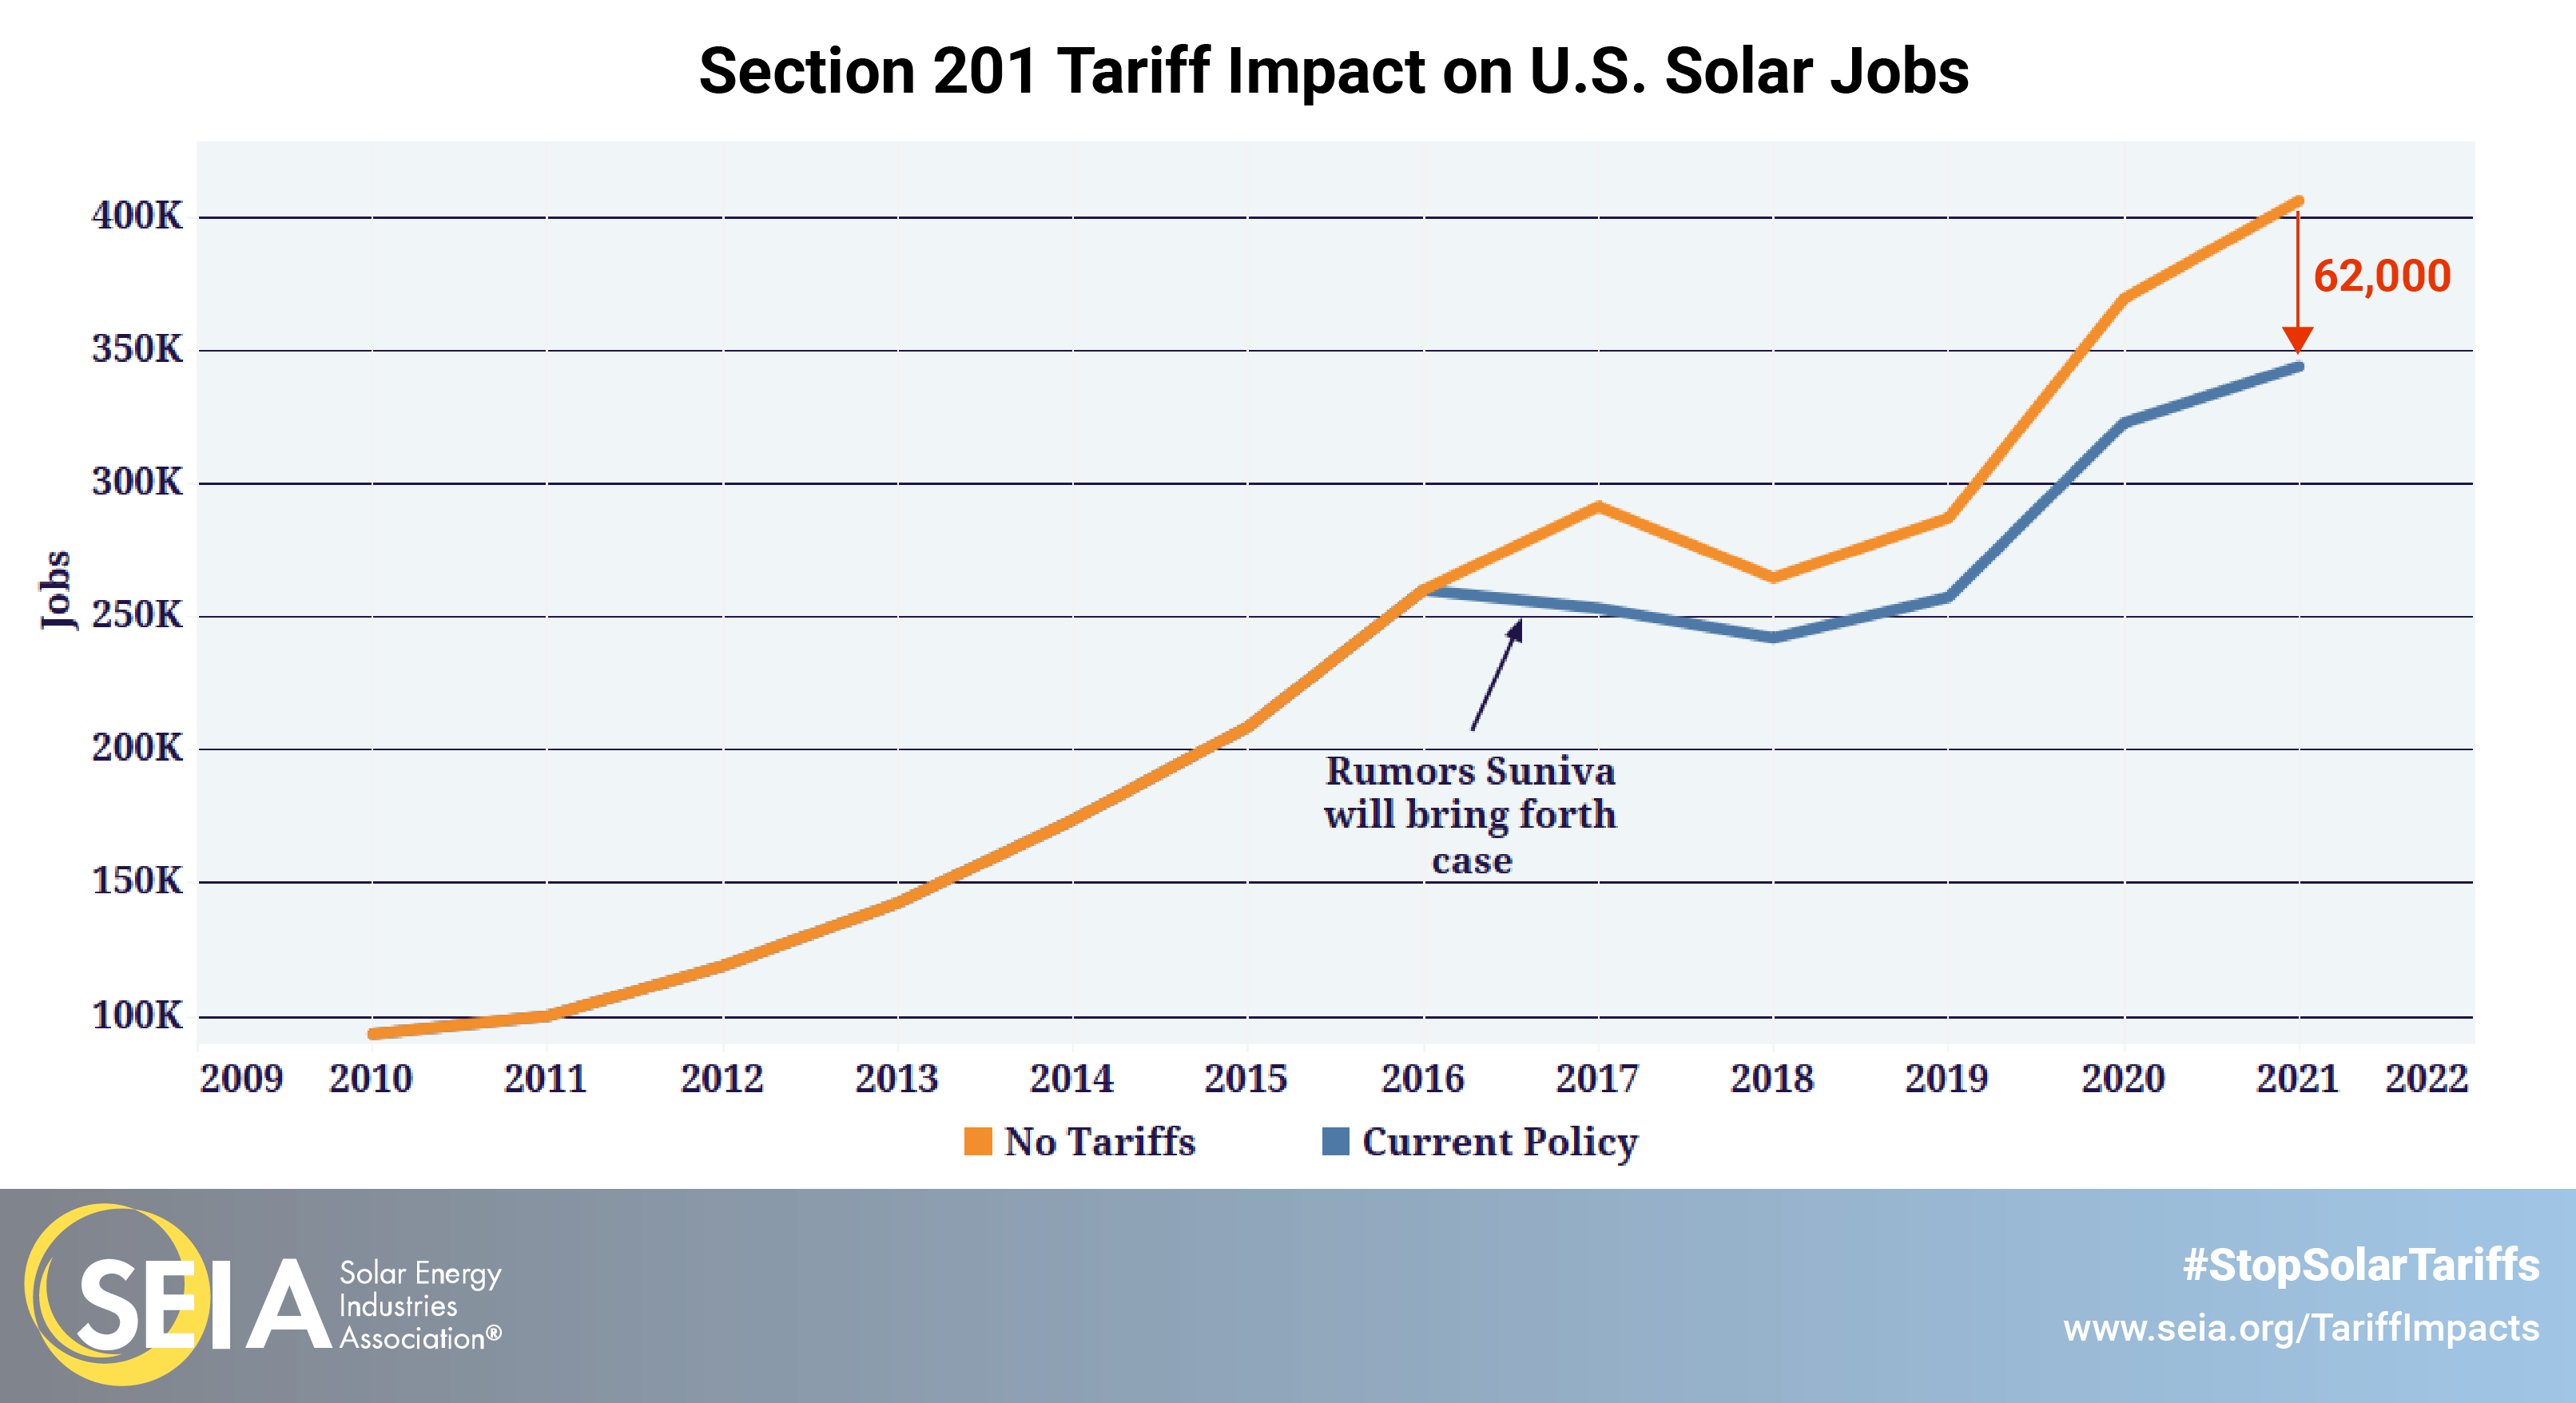 Section 201 tariff impacts on u.s. solar jobs